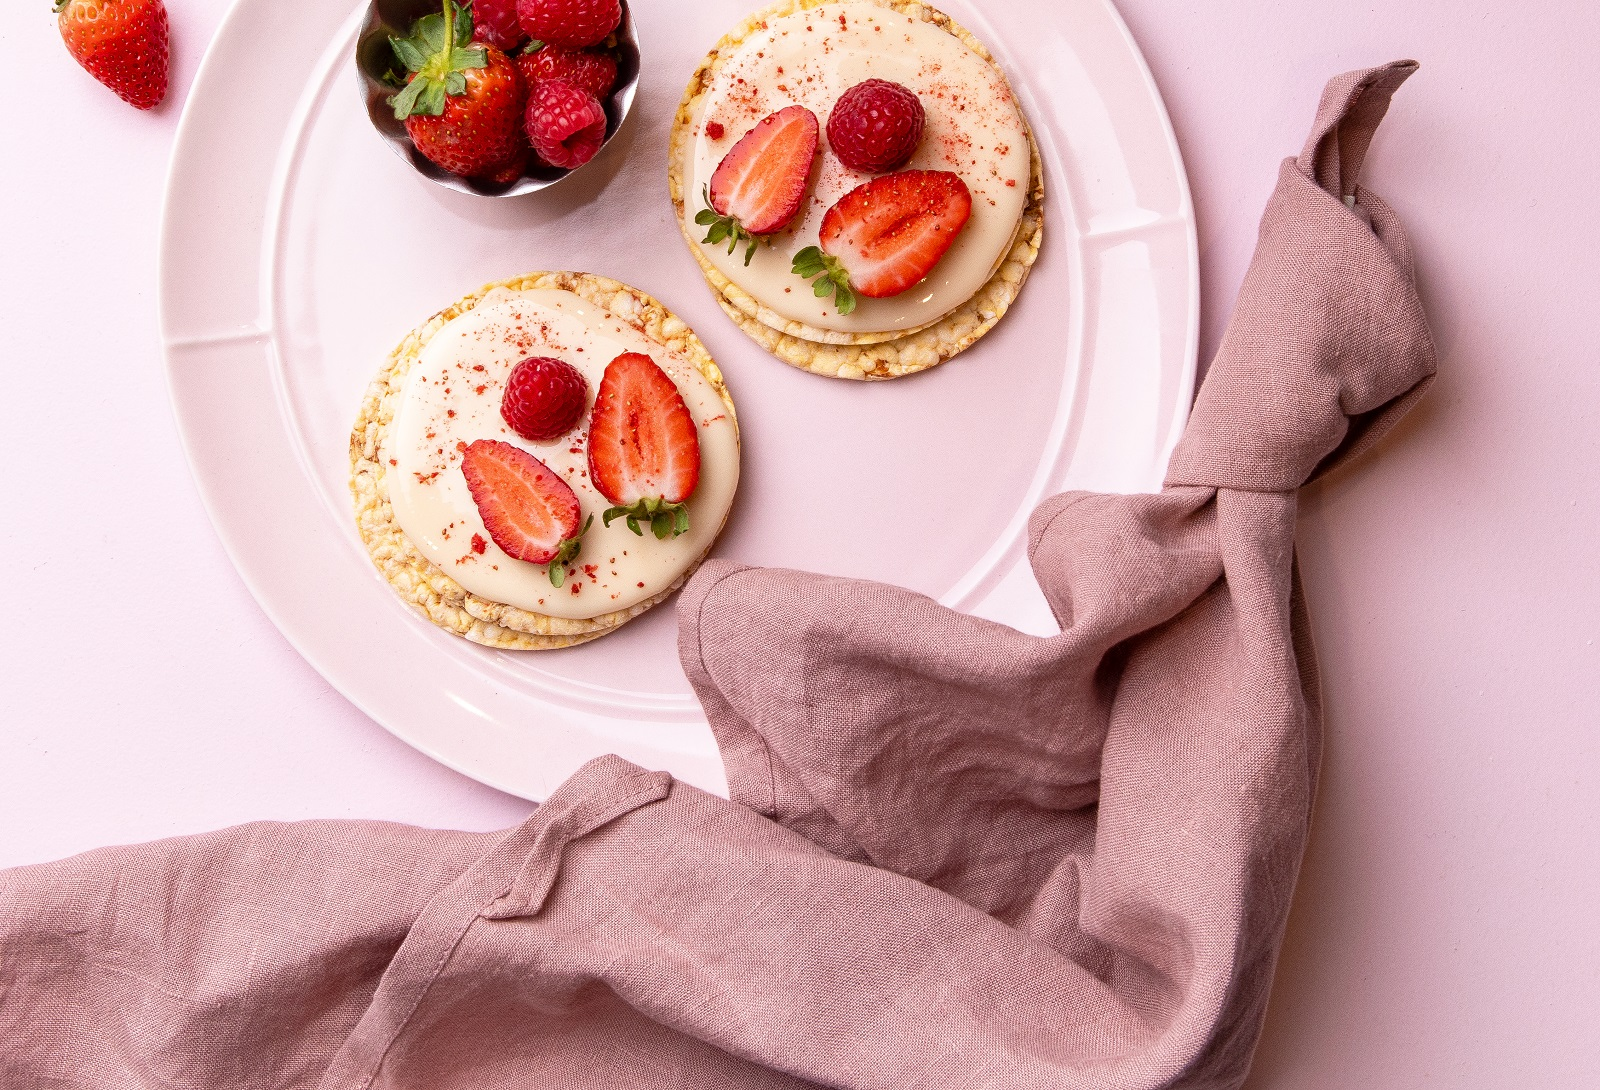 White Chocolate & Strawberries on CORN THINS slices as a decadent treat